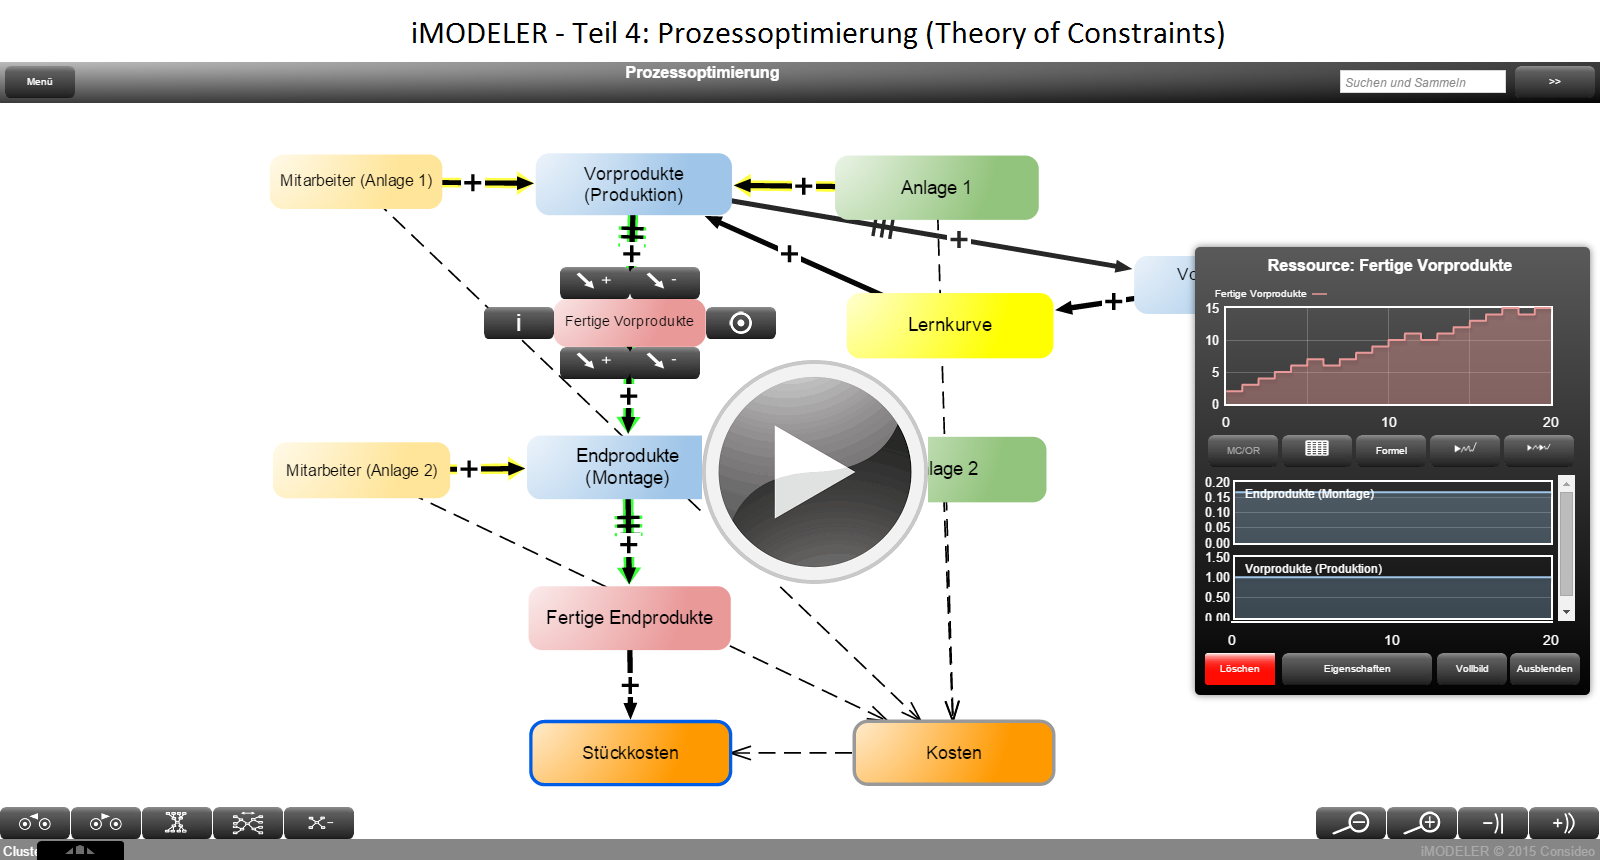 iMODELER: Prozessoptimierung (Theory of Constraints)